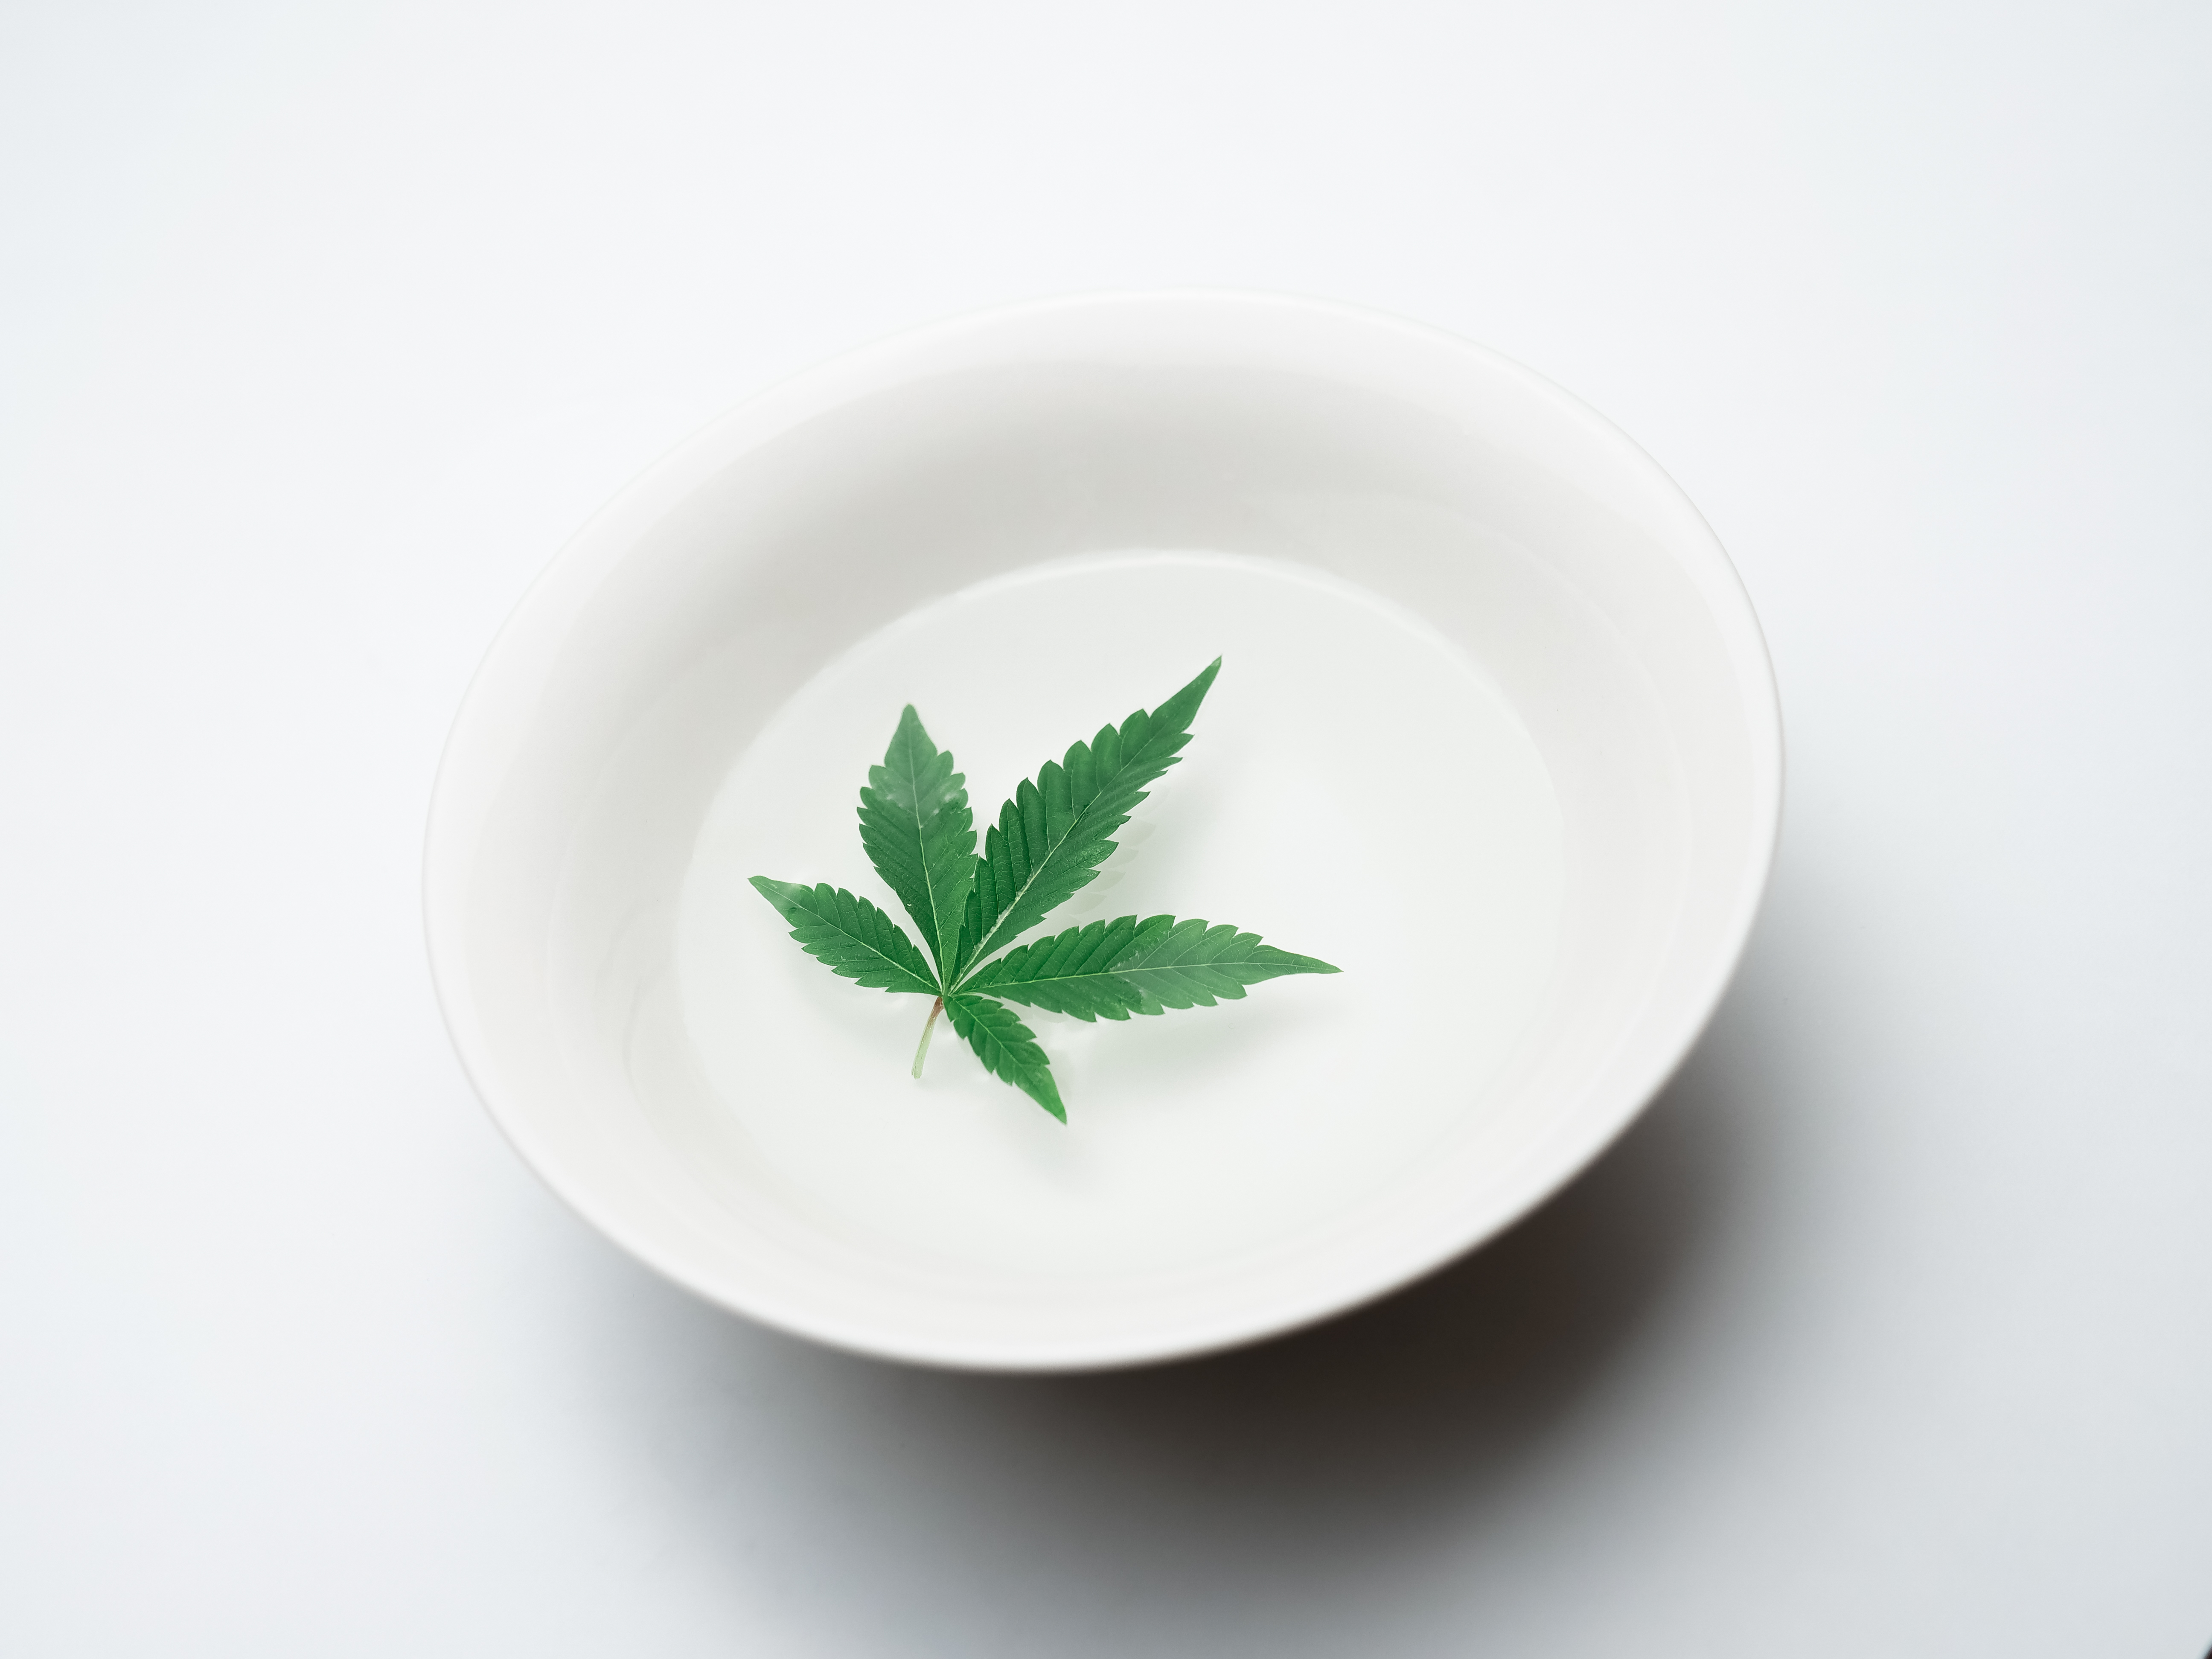 photo of green leaf on white ceramic plate